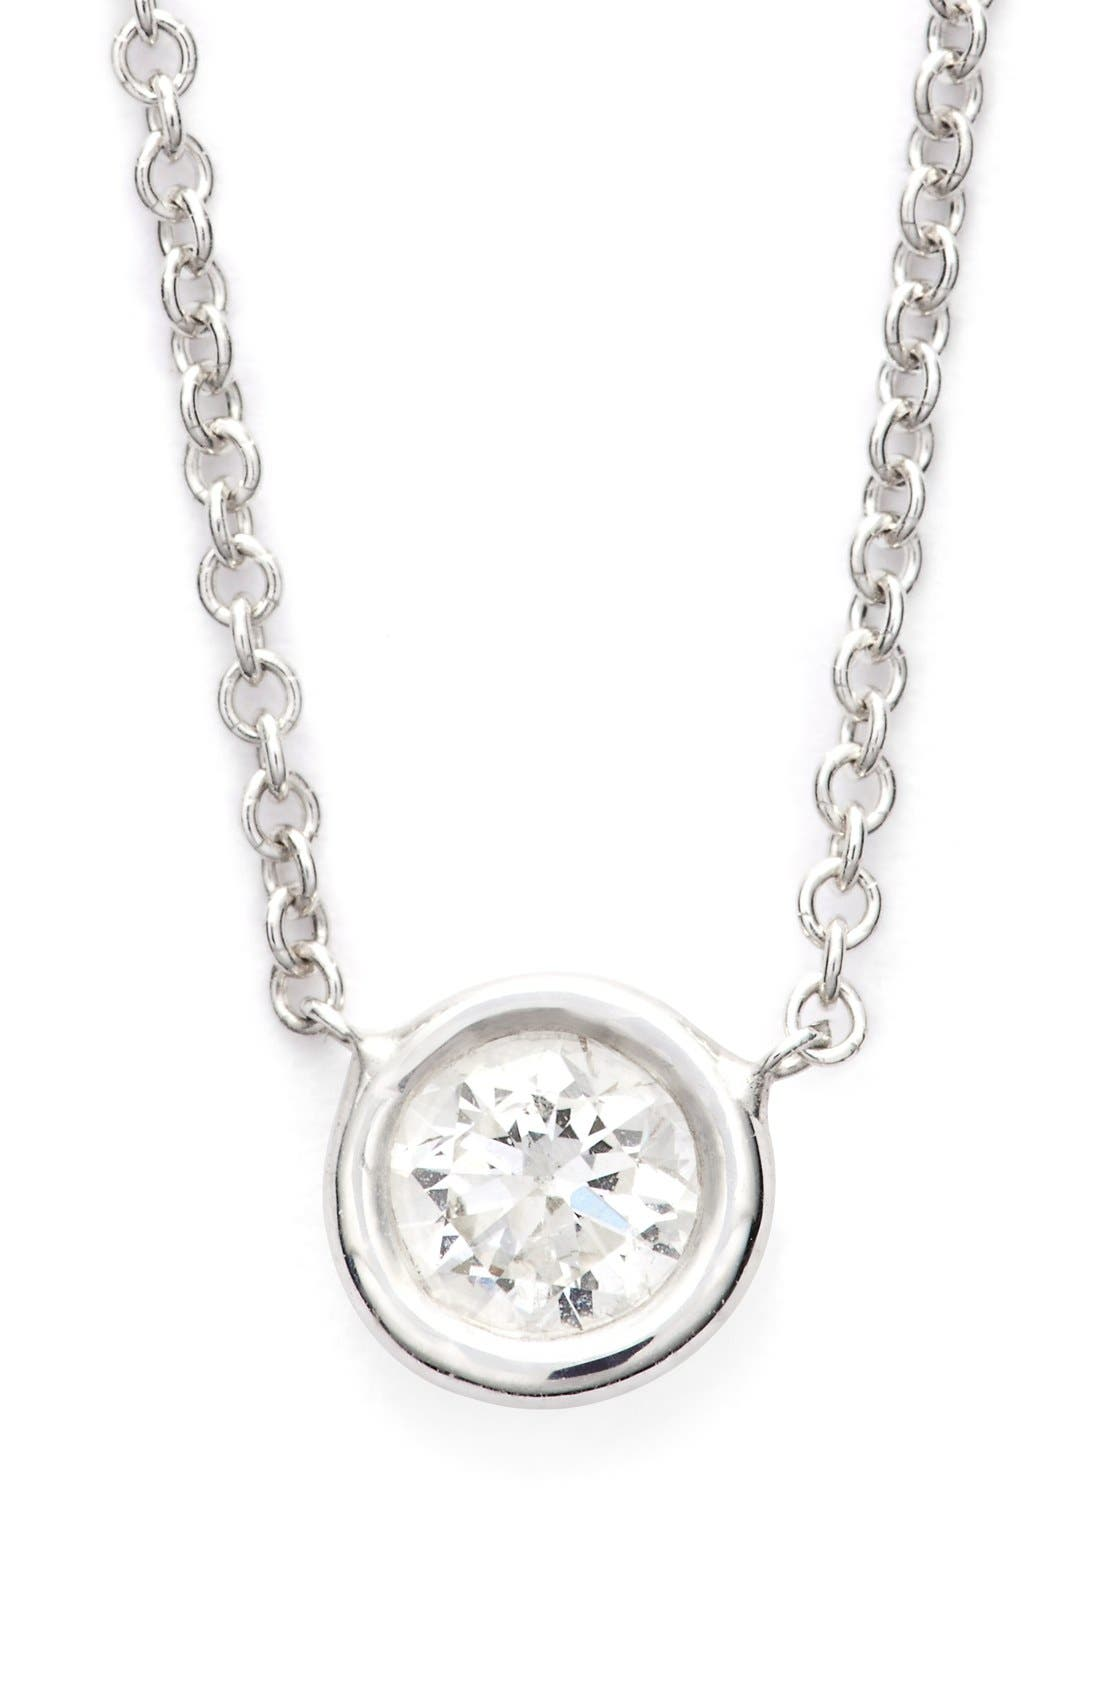 Alternate Image 1 Selected - Bony Levy Medium Diamond Solitaire Pendant Necklace (Limited Edition) (Nordstrom Exclusive)